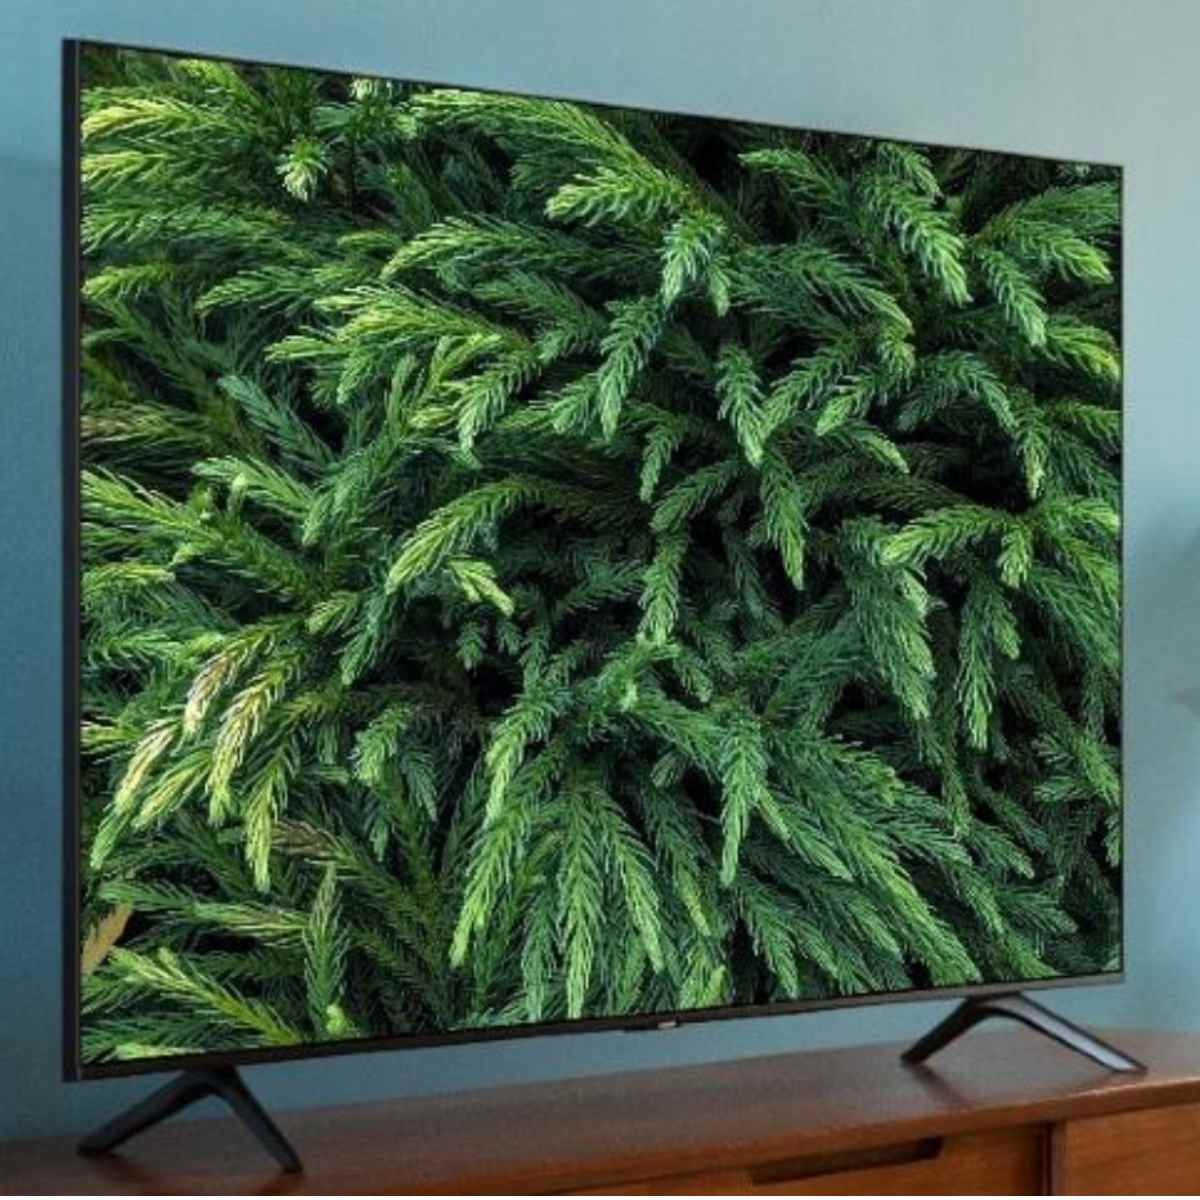 Samsung Crystal 75 inches 4K UHD TV 2020 TV Price in India, Specification,  Features | Digit.in